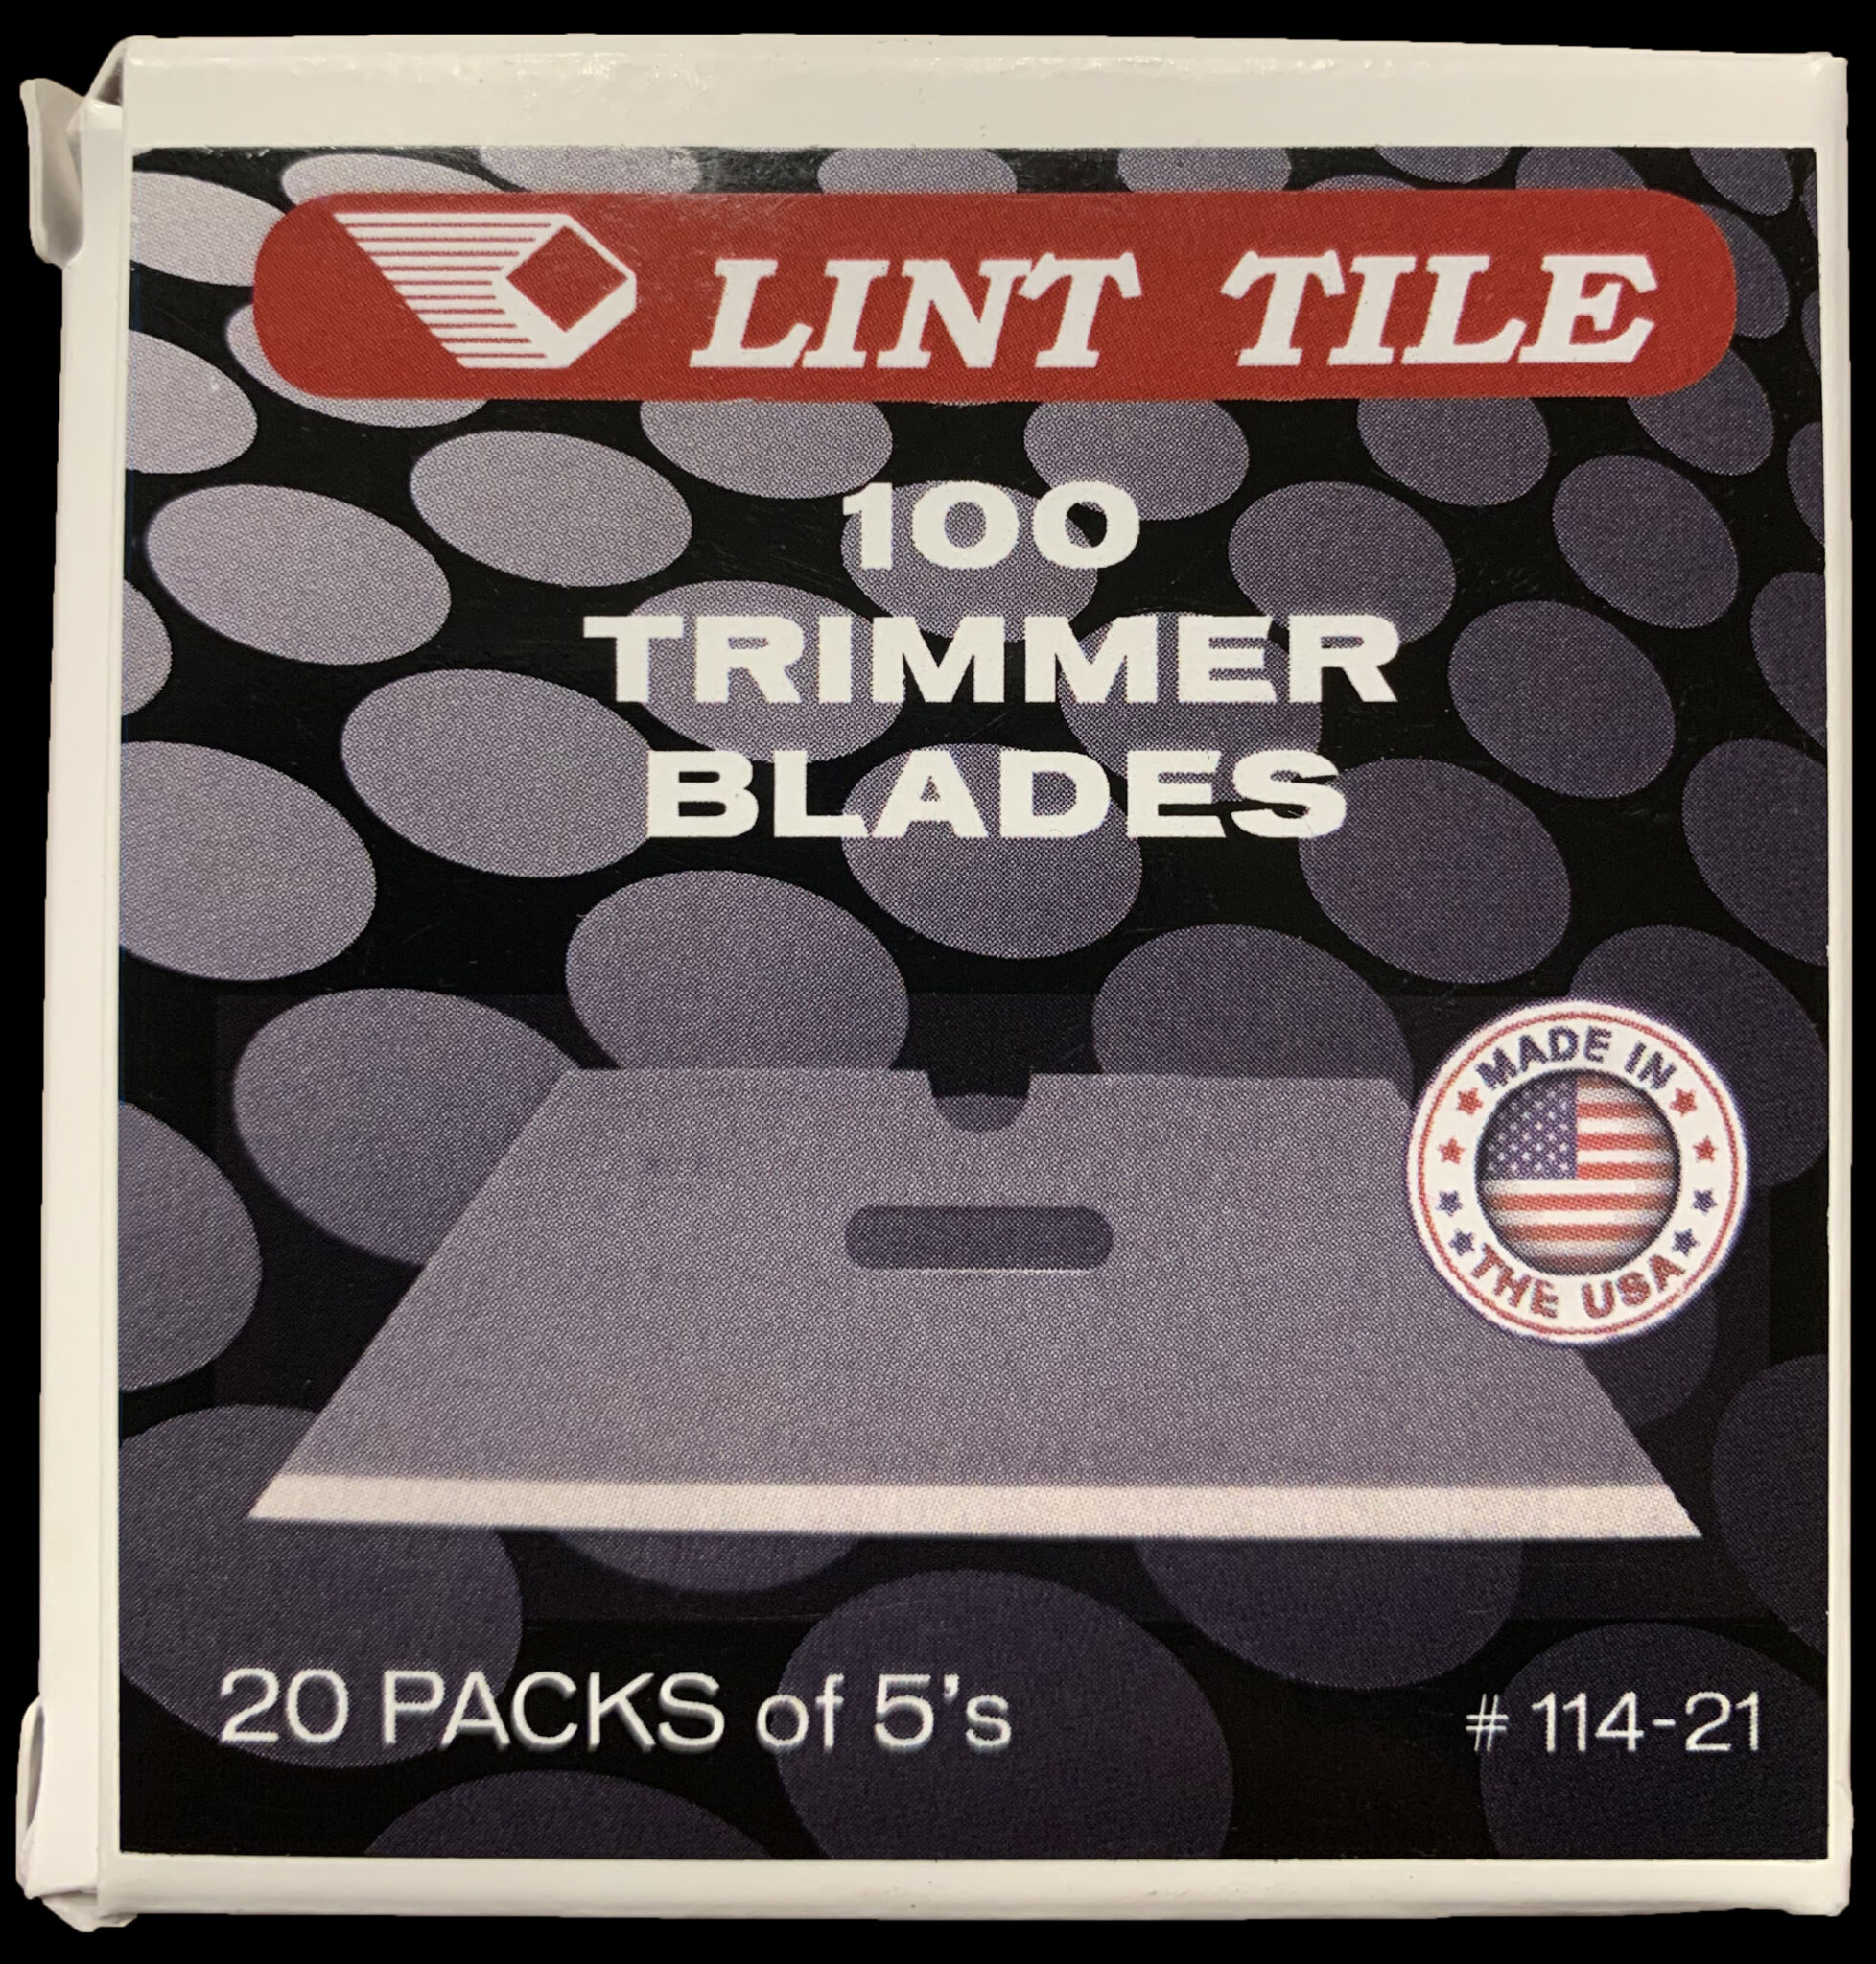 Lint Tile Trimmer Blades